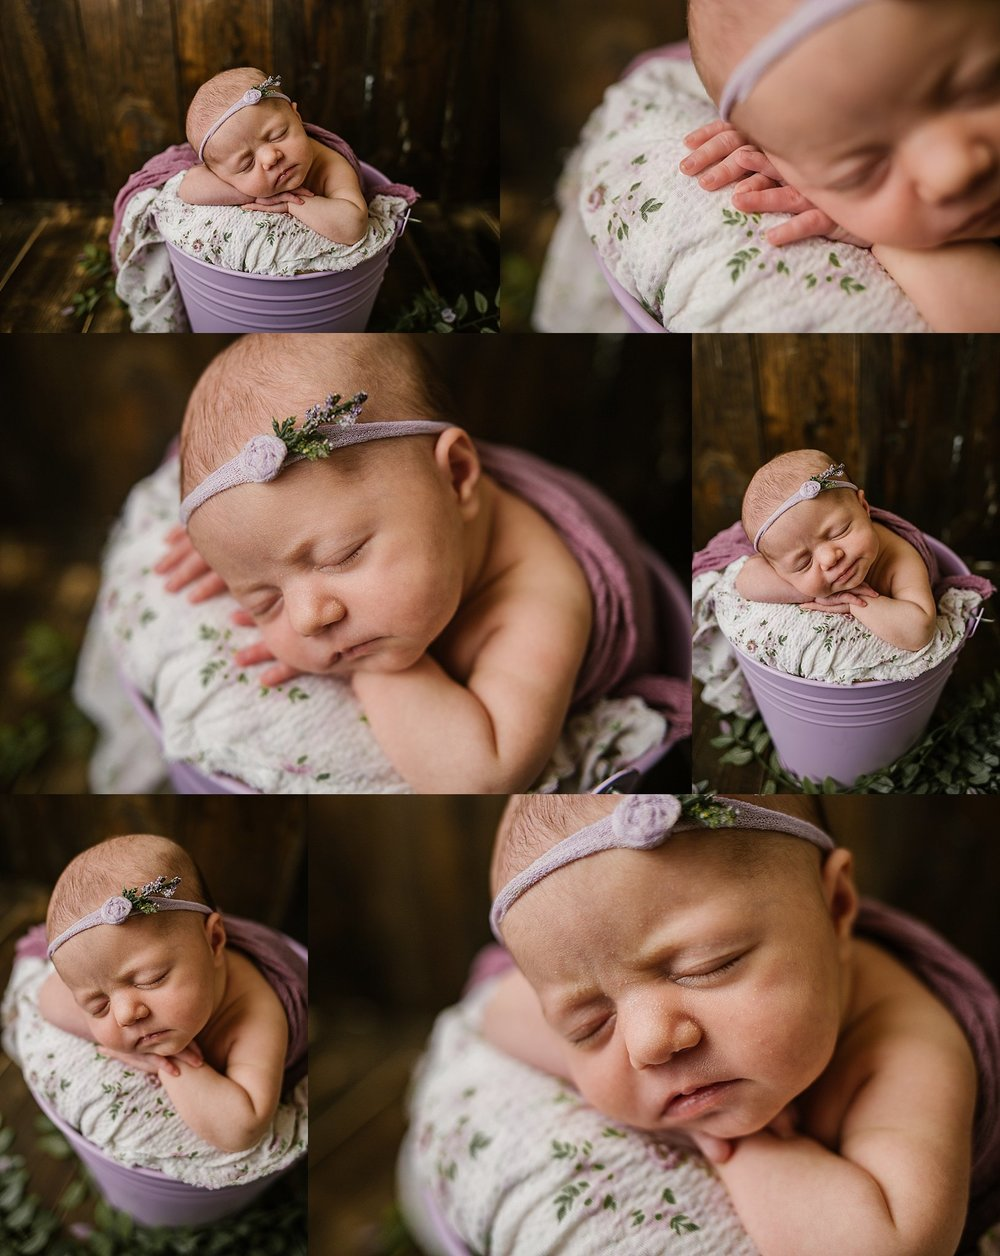 20180405-lake-of-the-ozarks-baby-girl-newborn-picture-best-baby-photographer-missouri-lebanon-03.jpg